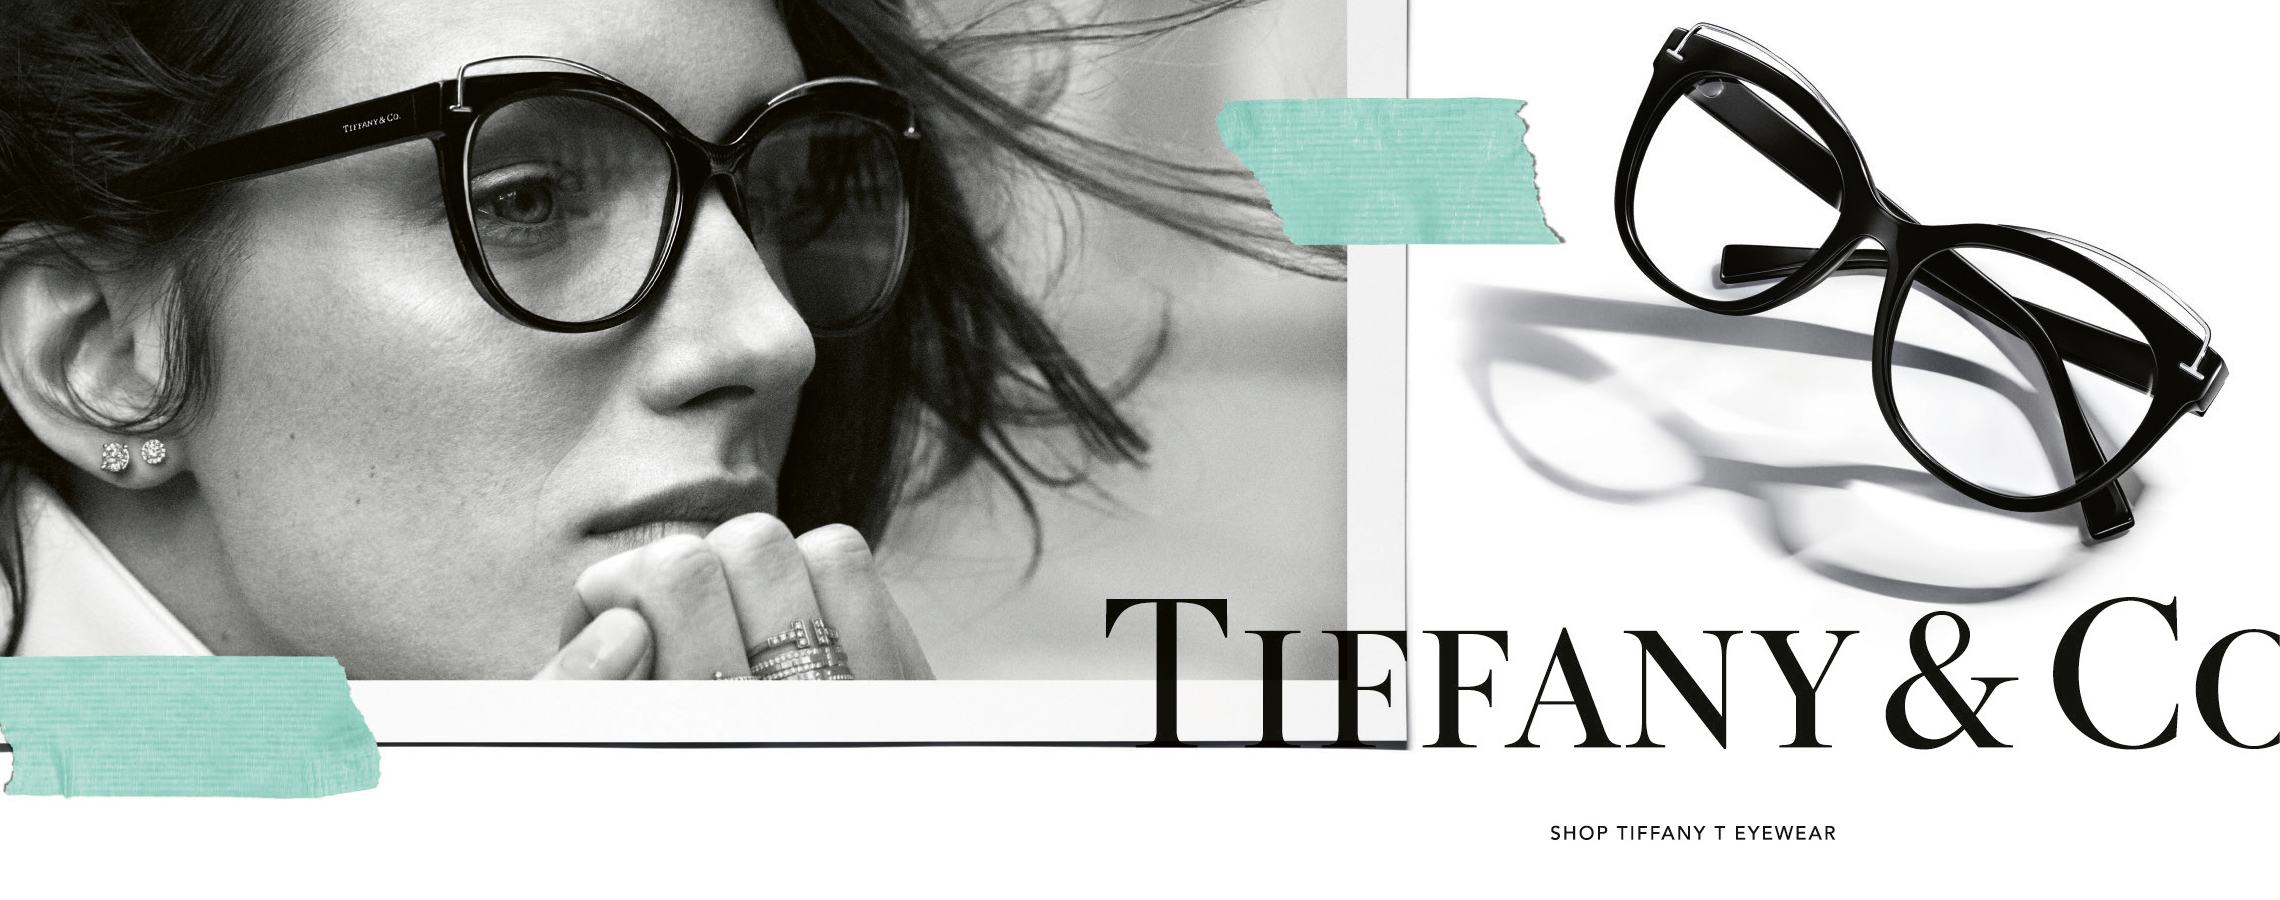 f709d5e5314d8 Tiffany   Co. Eyewear - David Clulow